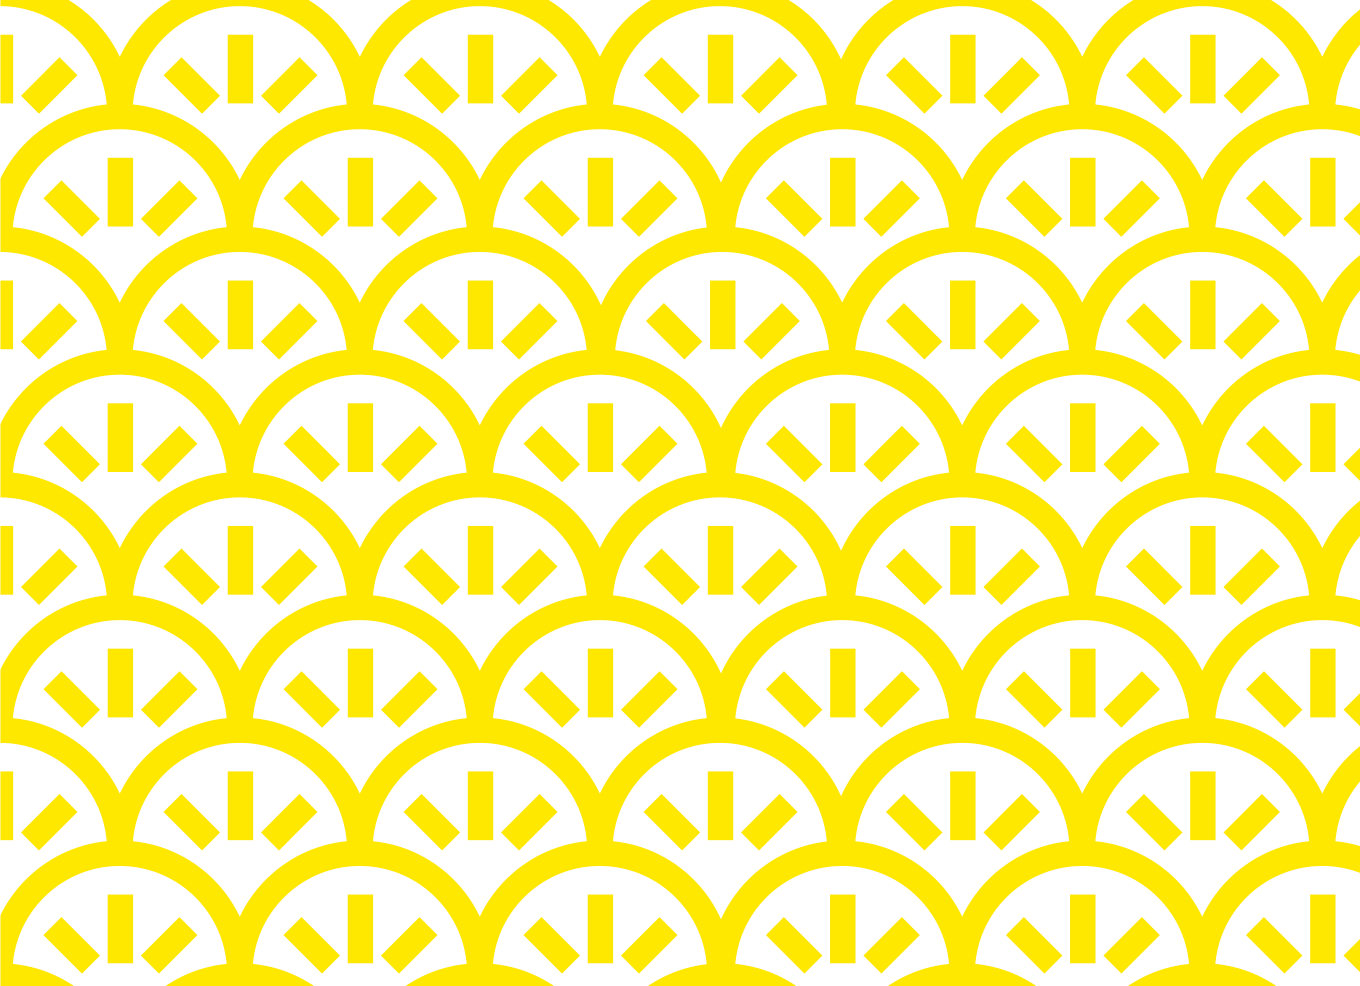 The Good Lemon Brand Pattern